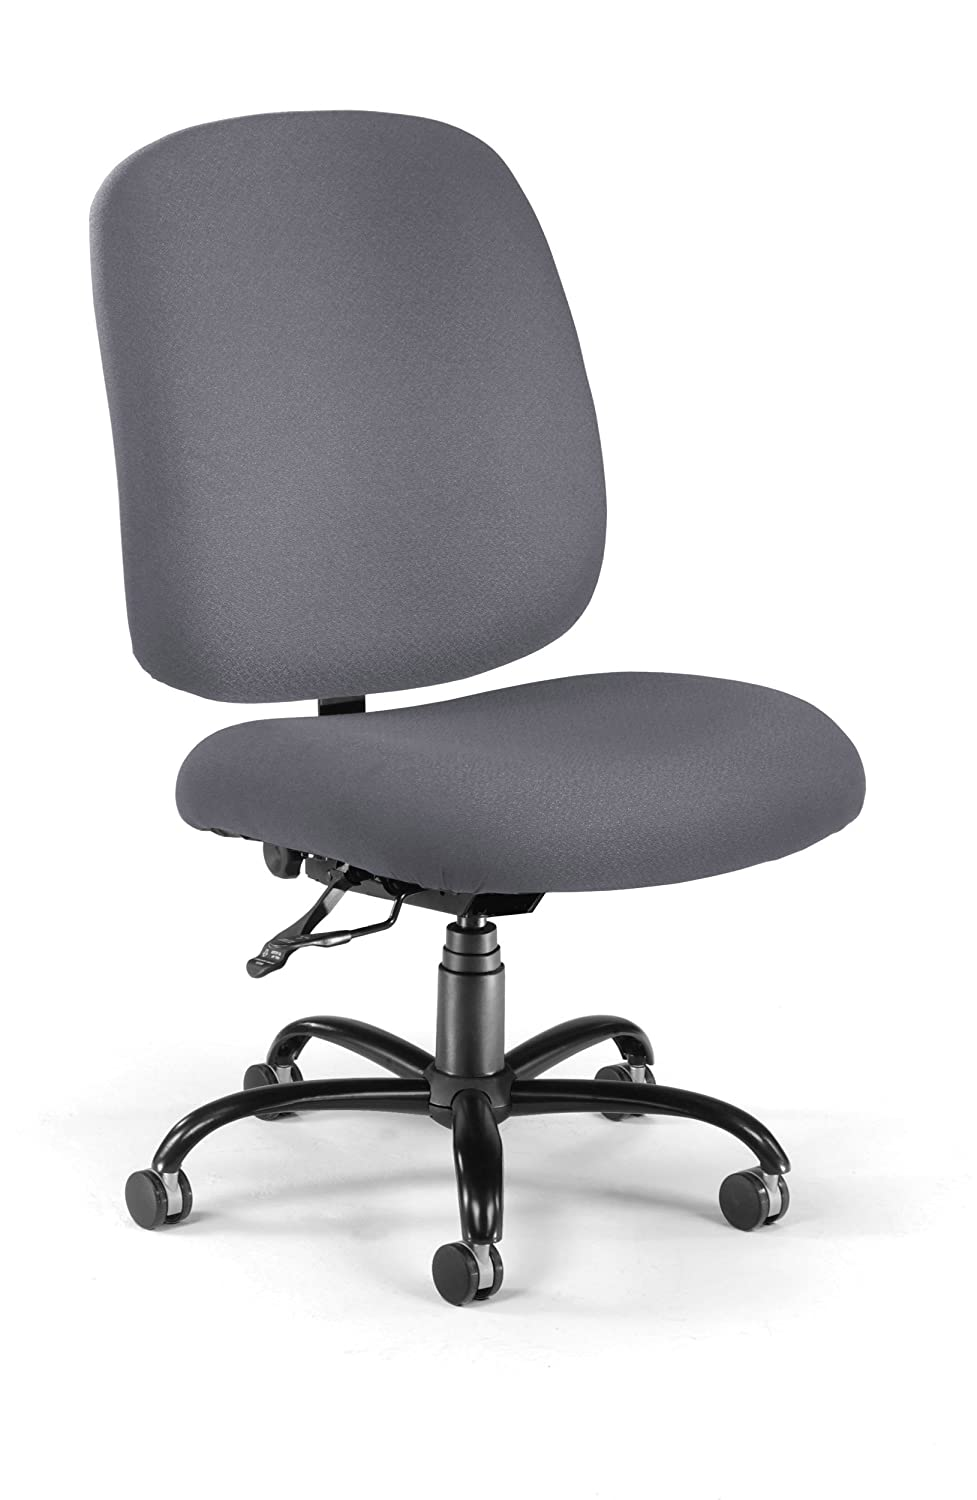 Cool Ofm Big And Tall Executive Task Chair Armless Fabric Office Chair Gray 700 239 Home Interior And Landscaping Ologienasavecom